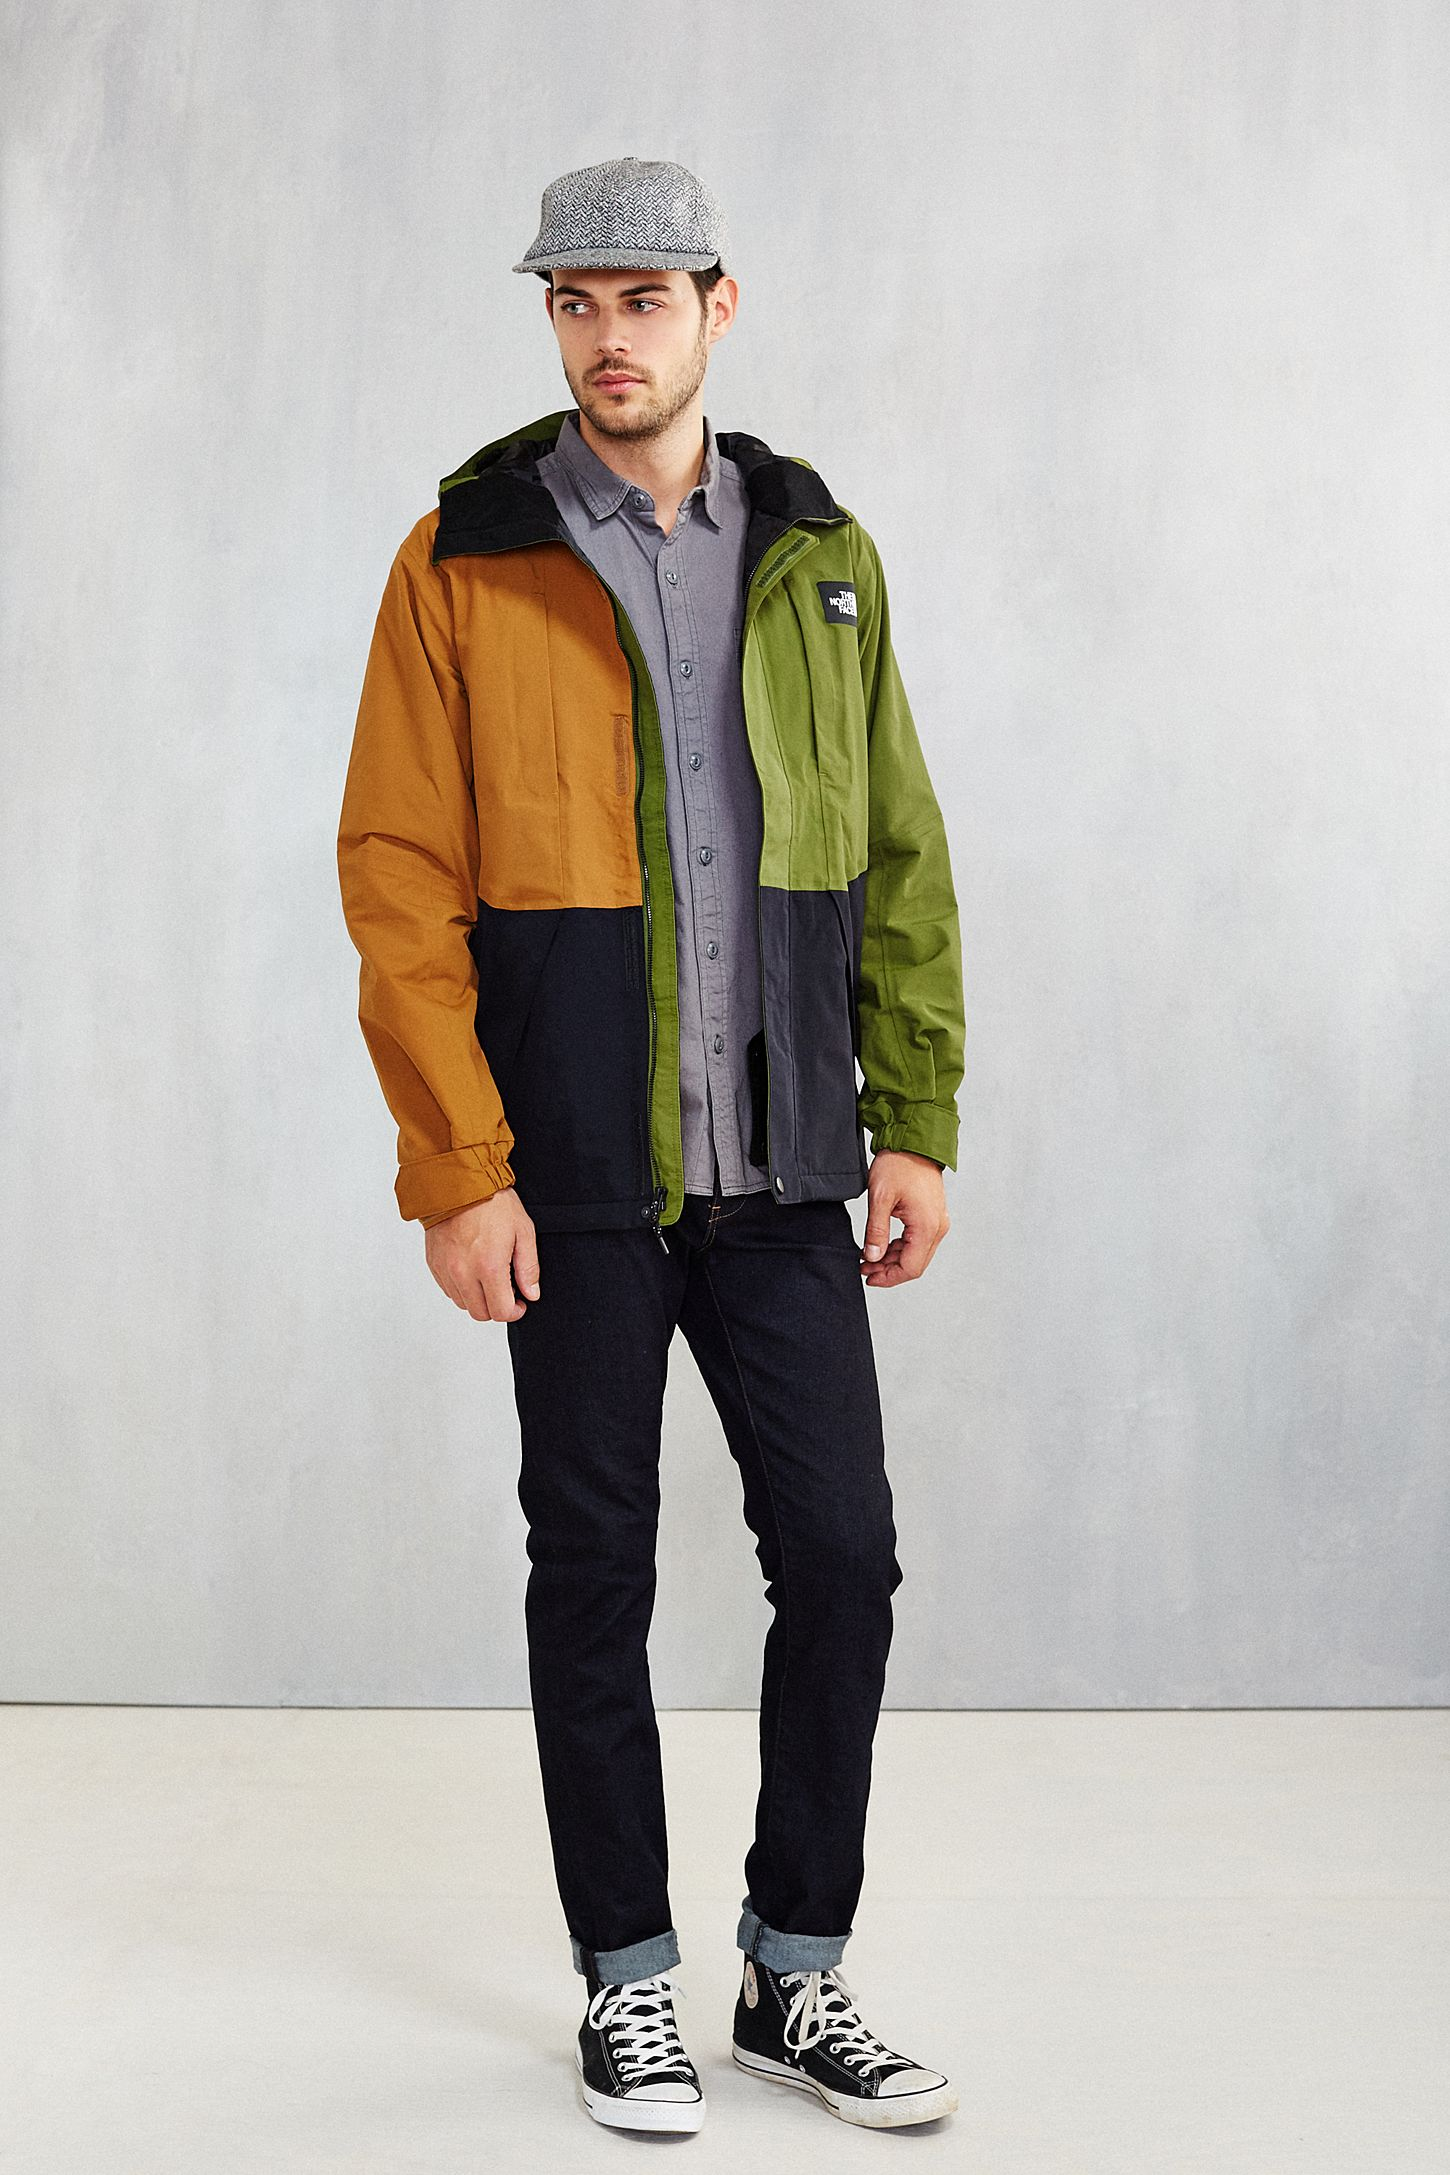 7632c3e25f35 Slide View  6  The North Face Turn It Up Jacket